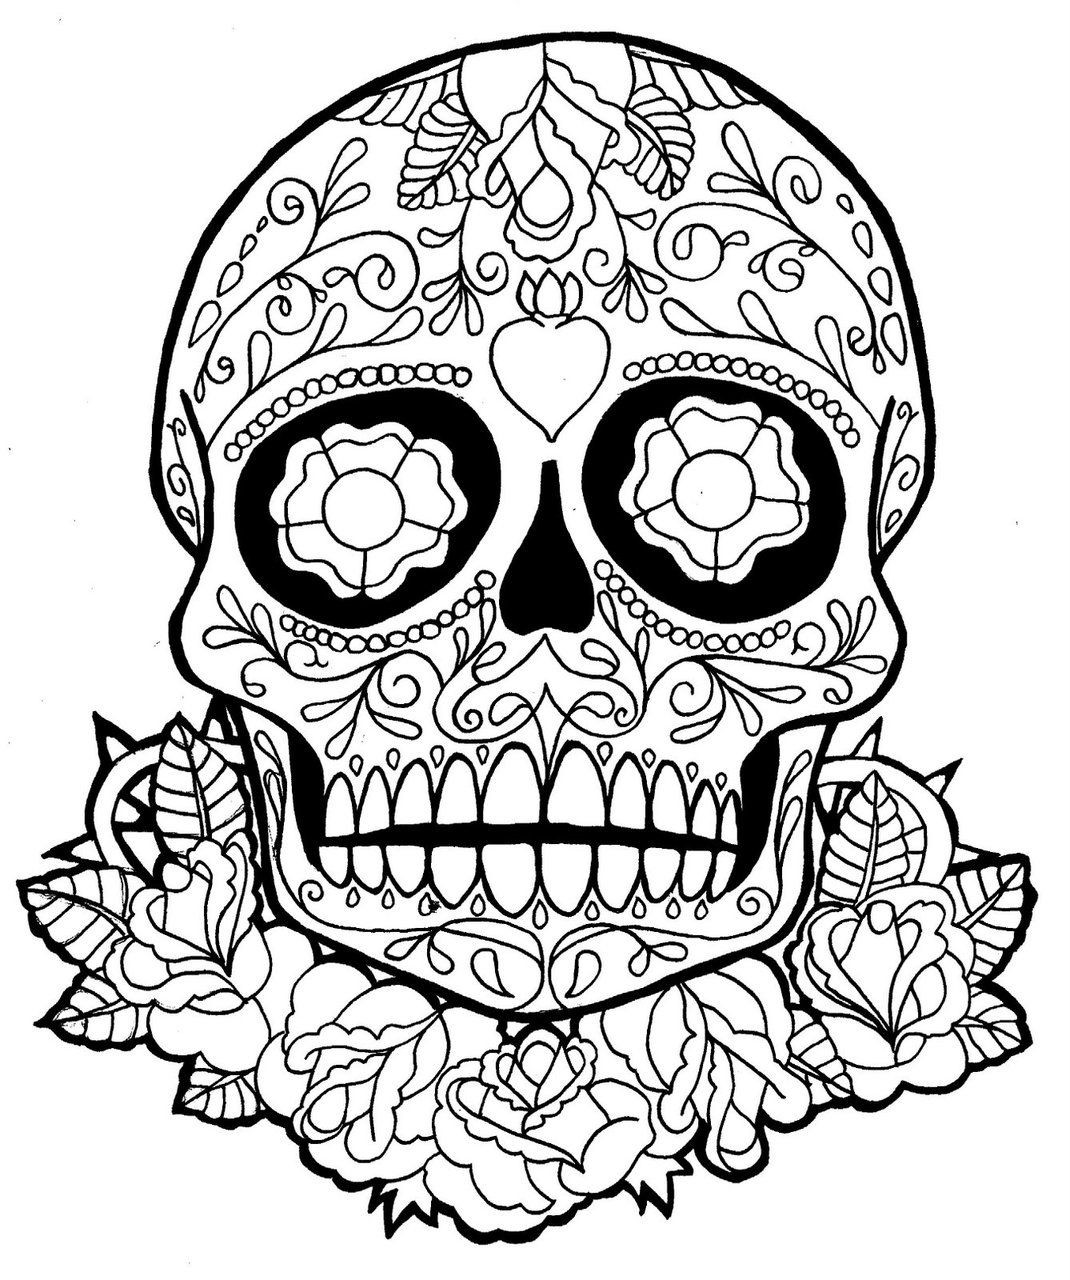 1070x1280 Skull Coloring Pages For Teen Sugar Dia De Los Muertos Incredible